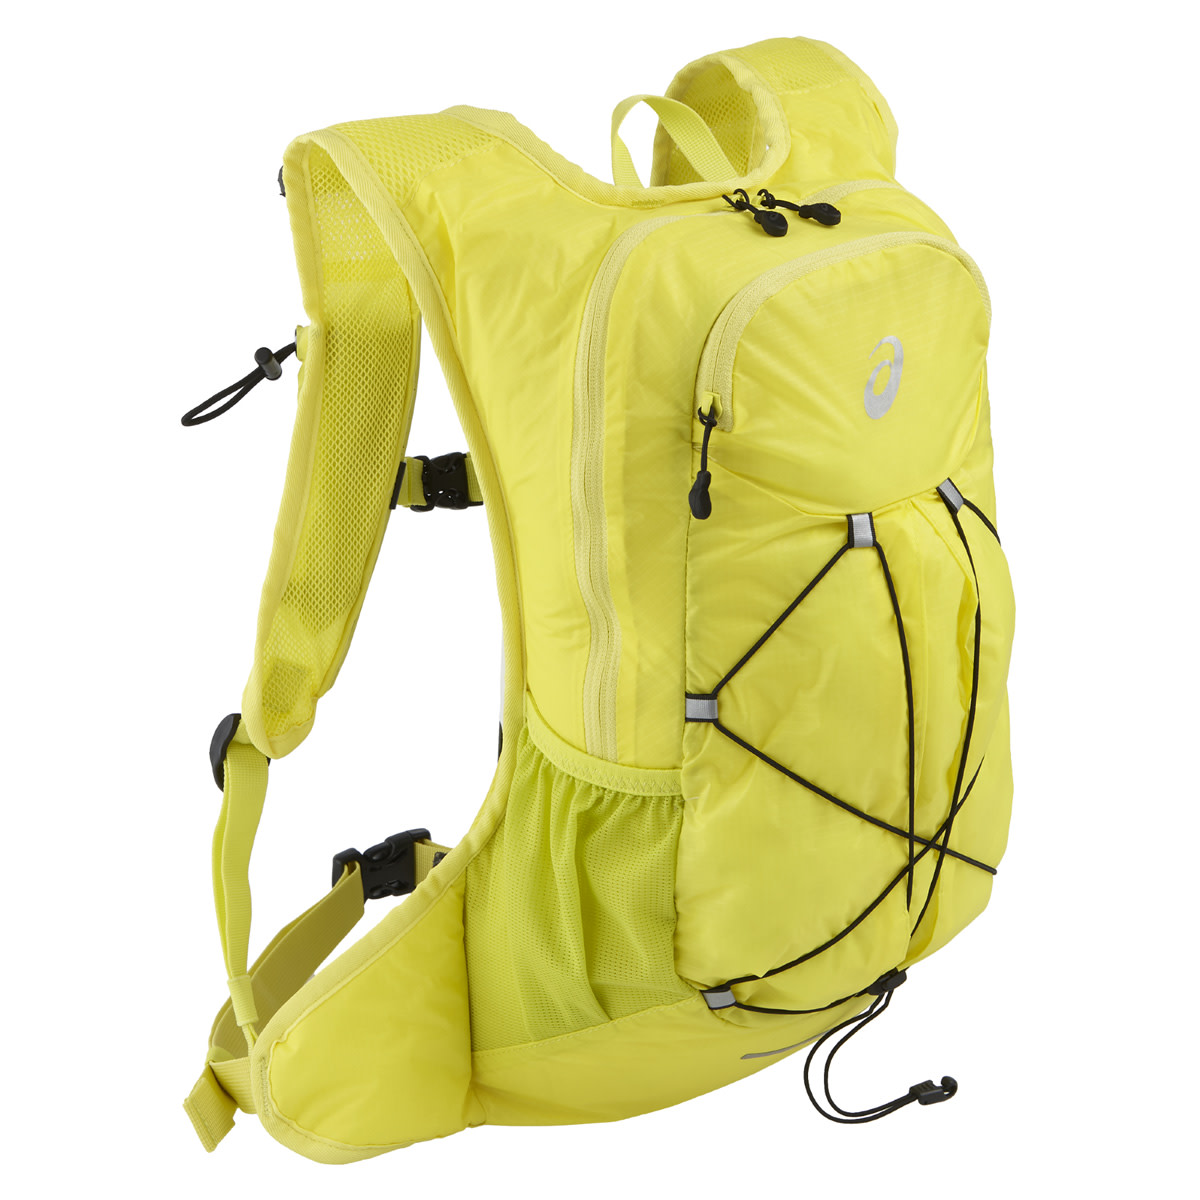 b71a90f2ae ASICS Lightweight Running Backpack - Backpacks - Yellow